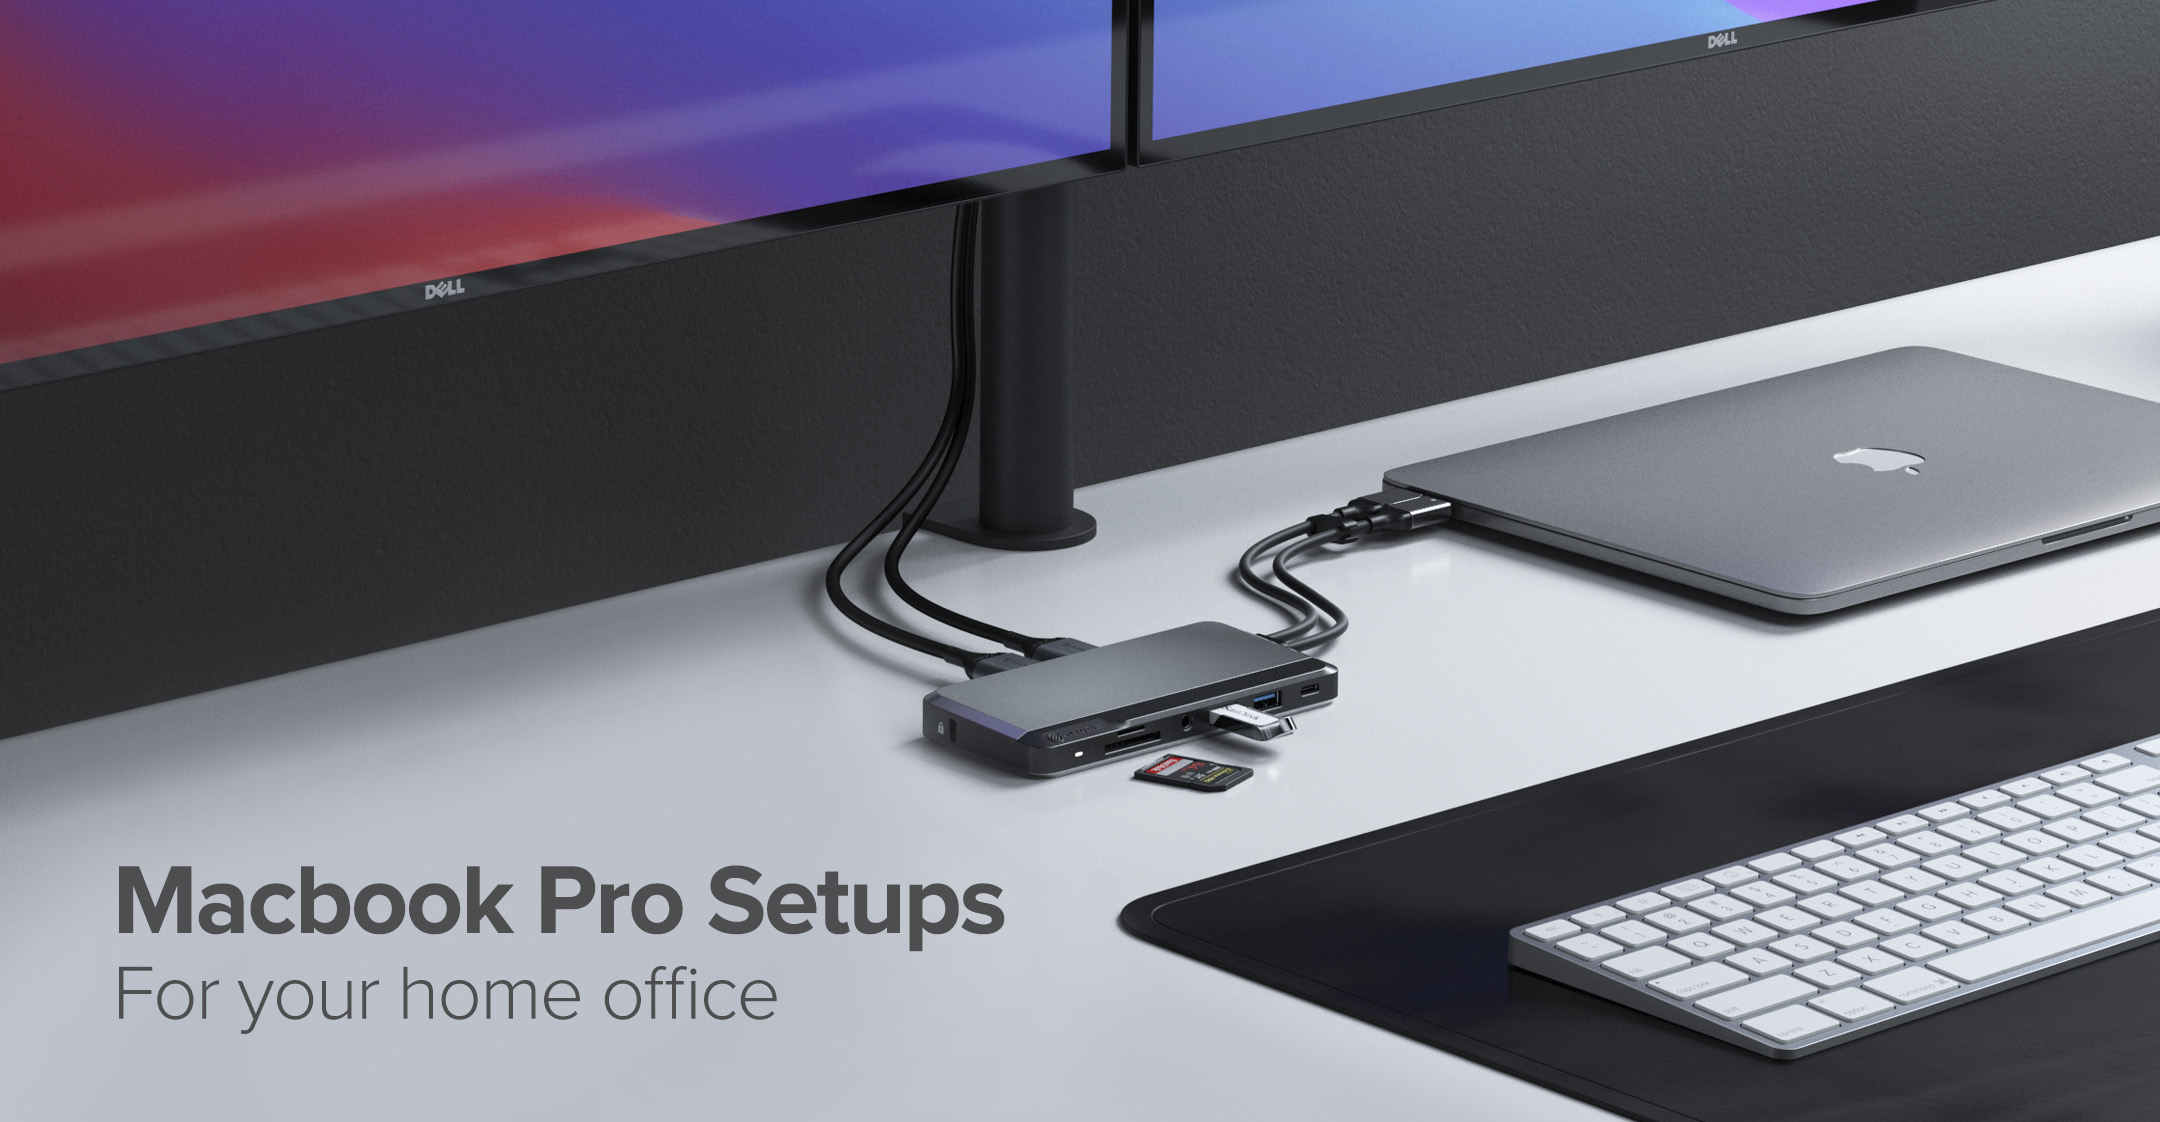 Setting up your Macbook Pro for your home office